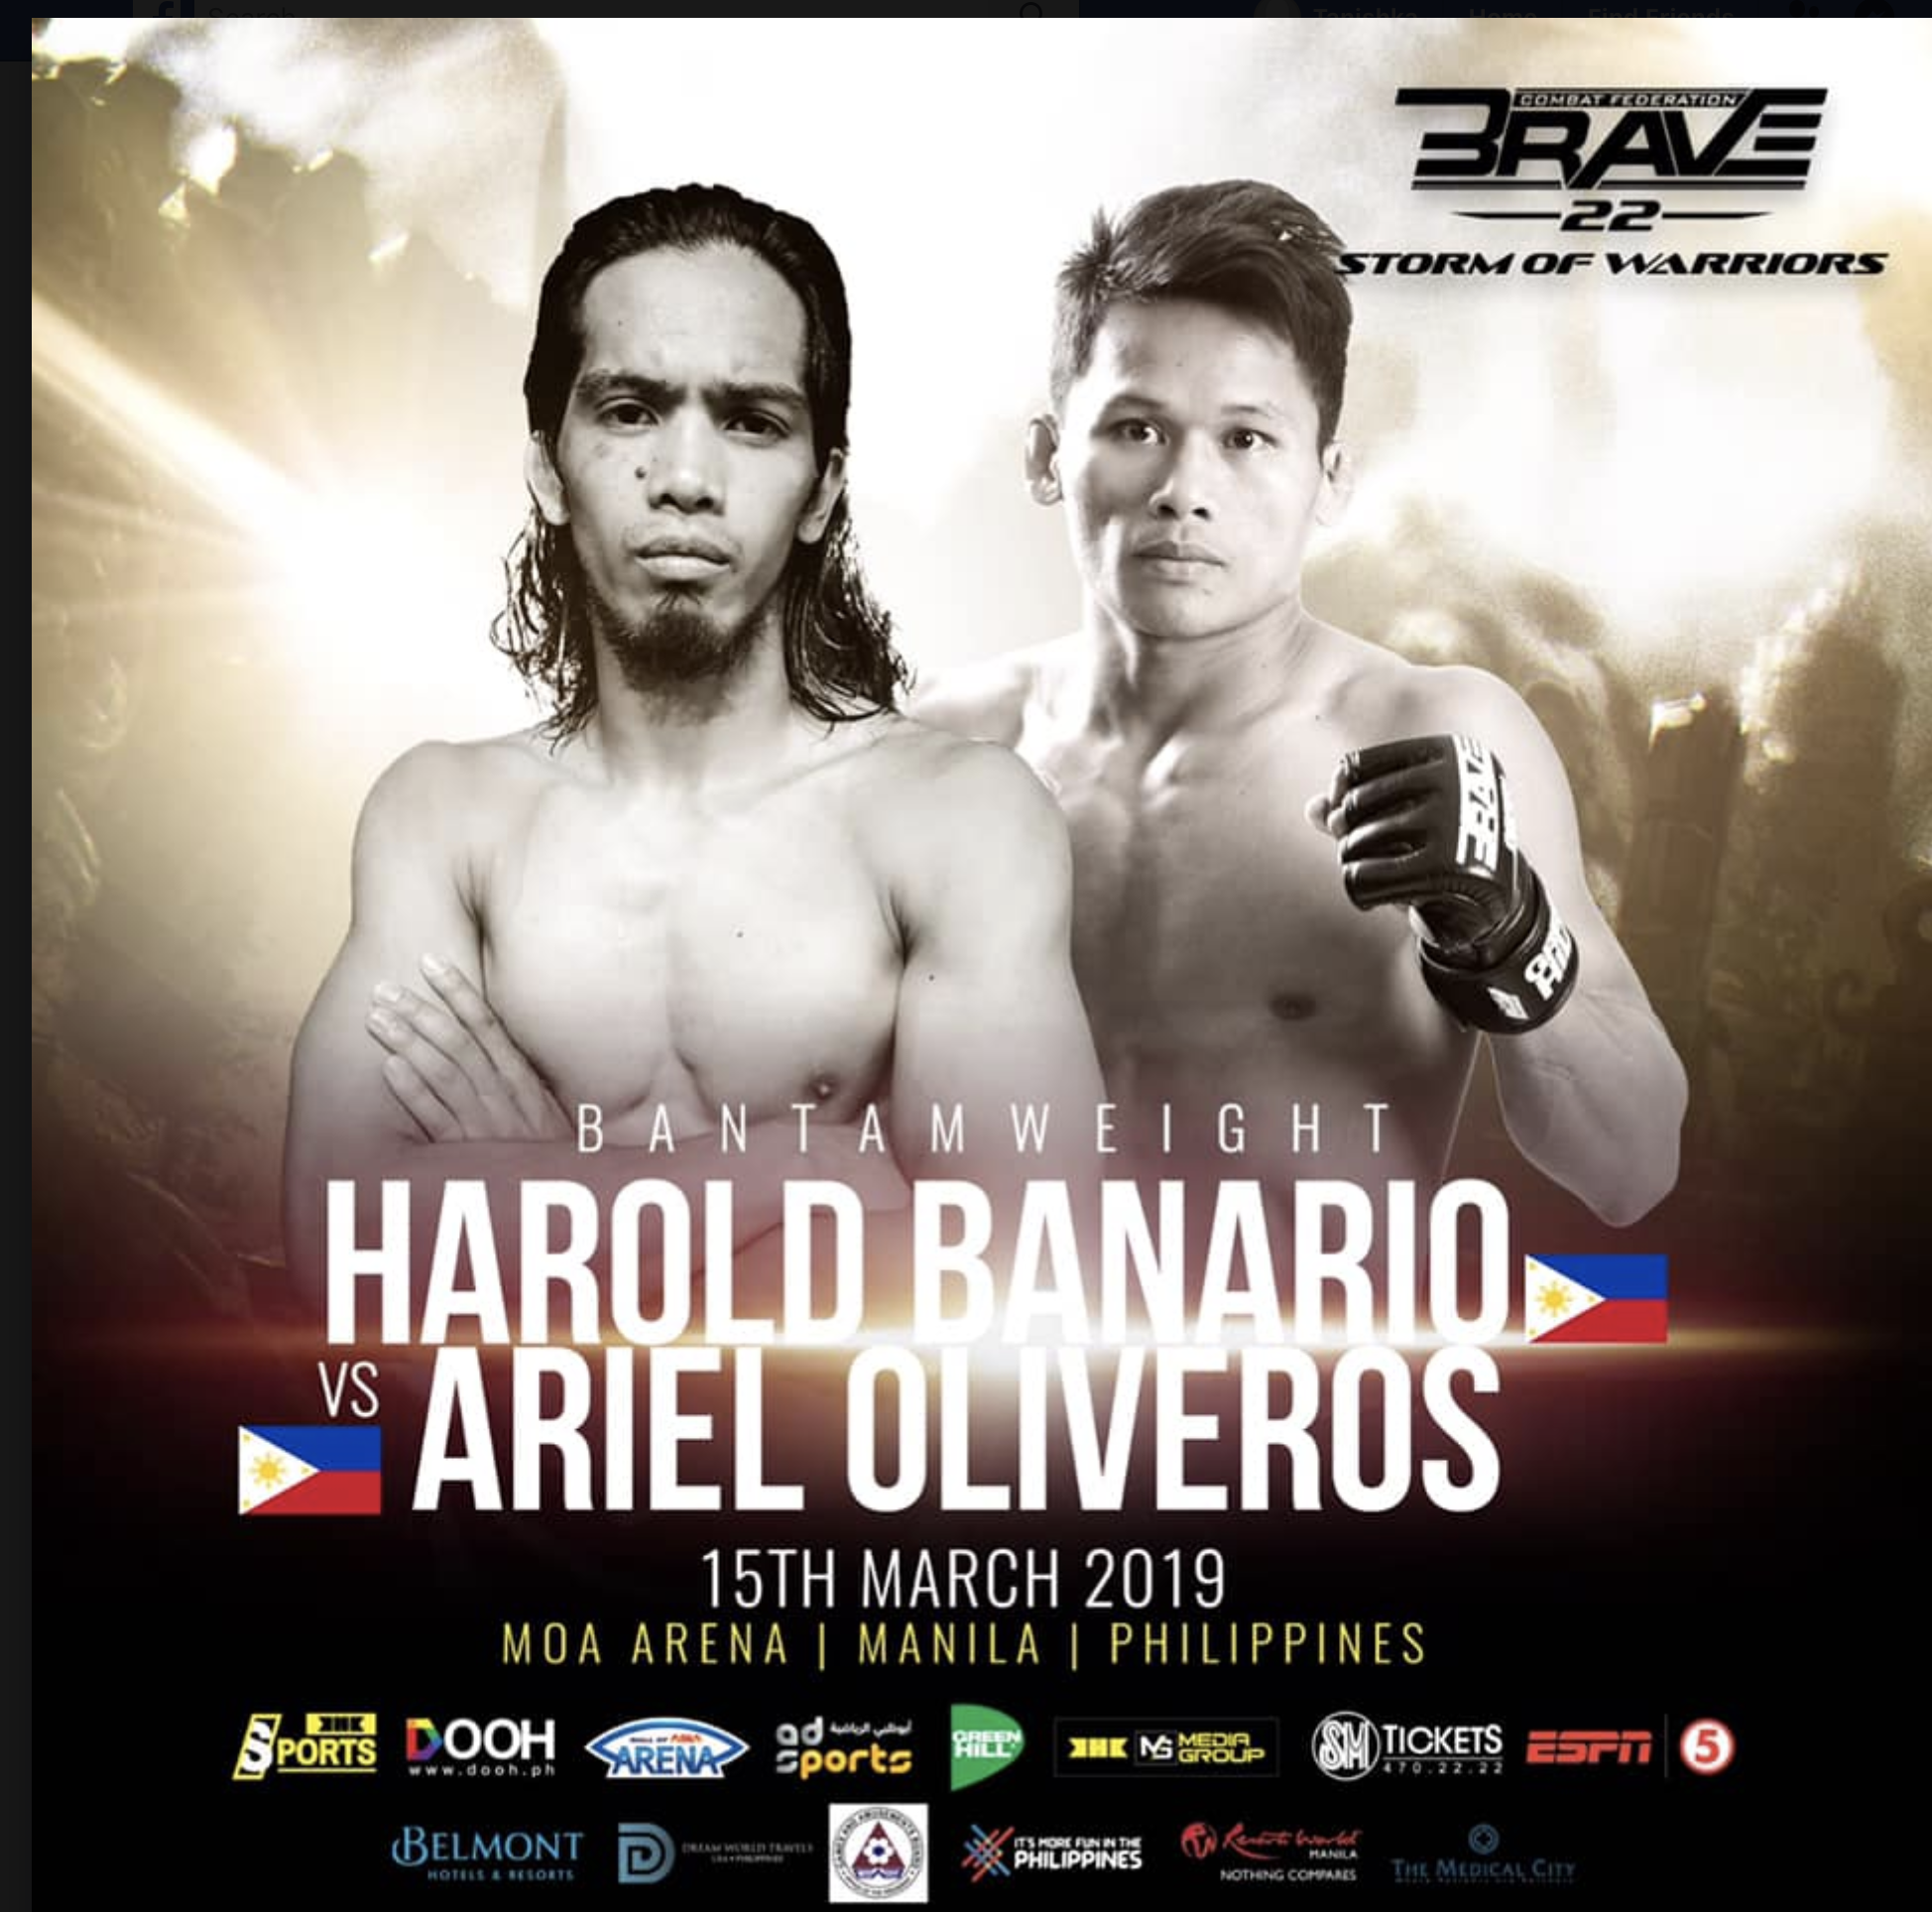 Harold Banario has a new opponent for debut fight at Brave 22 -